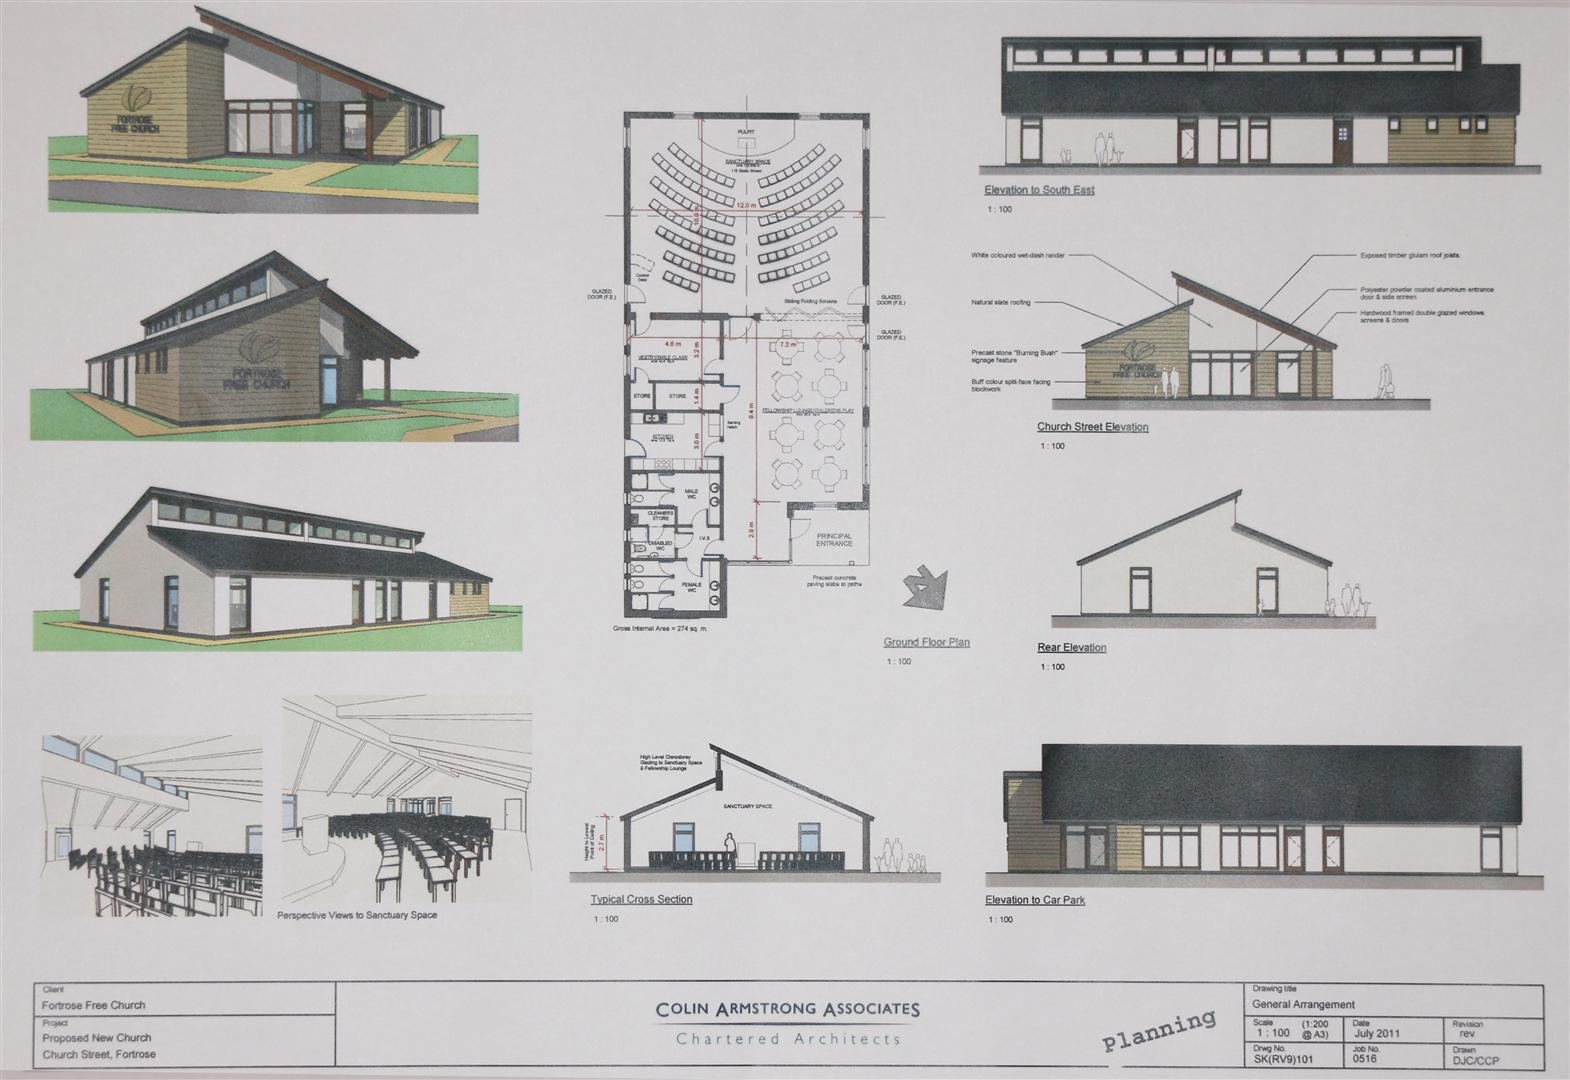 New build appeal fortrosefreechurchofscotland for New building plans